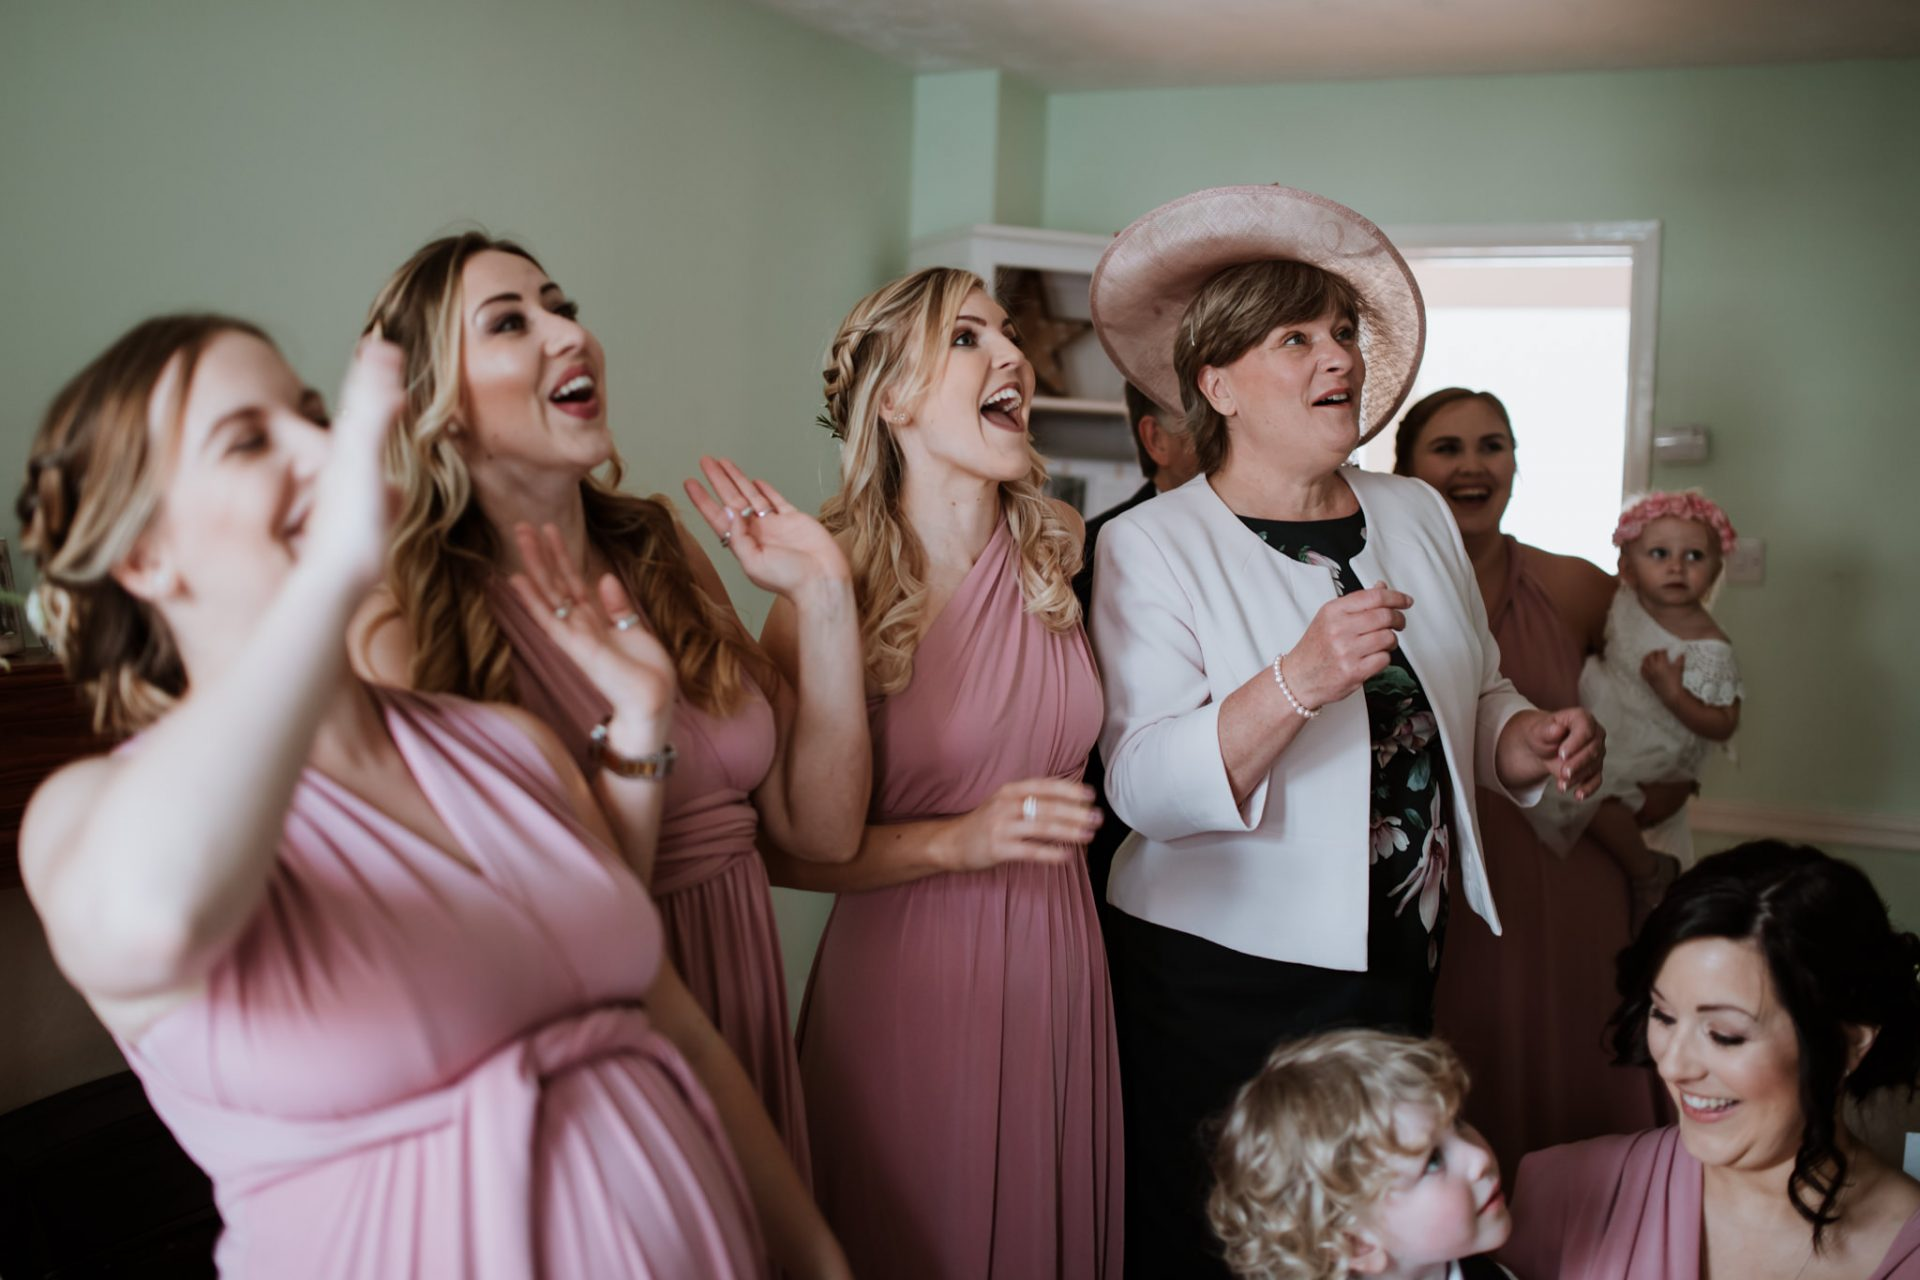 bridesmaid and parents of the bride react as they see the bride in her dress for the first time